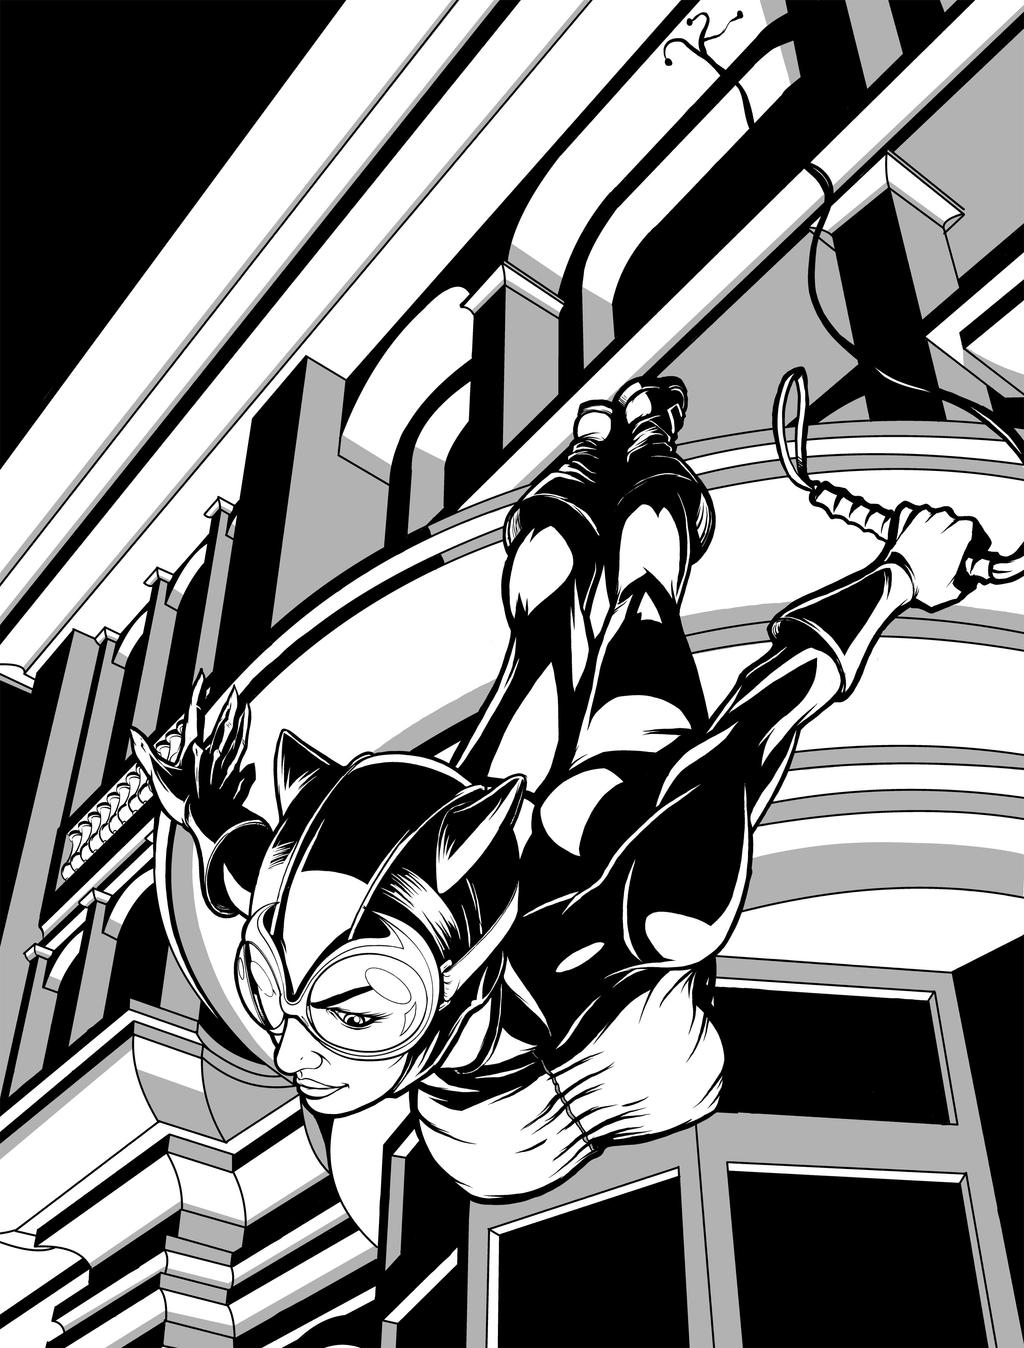 Catwoman leaping by JarOfComics